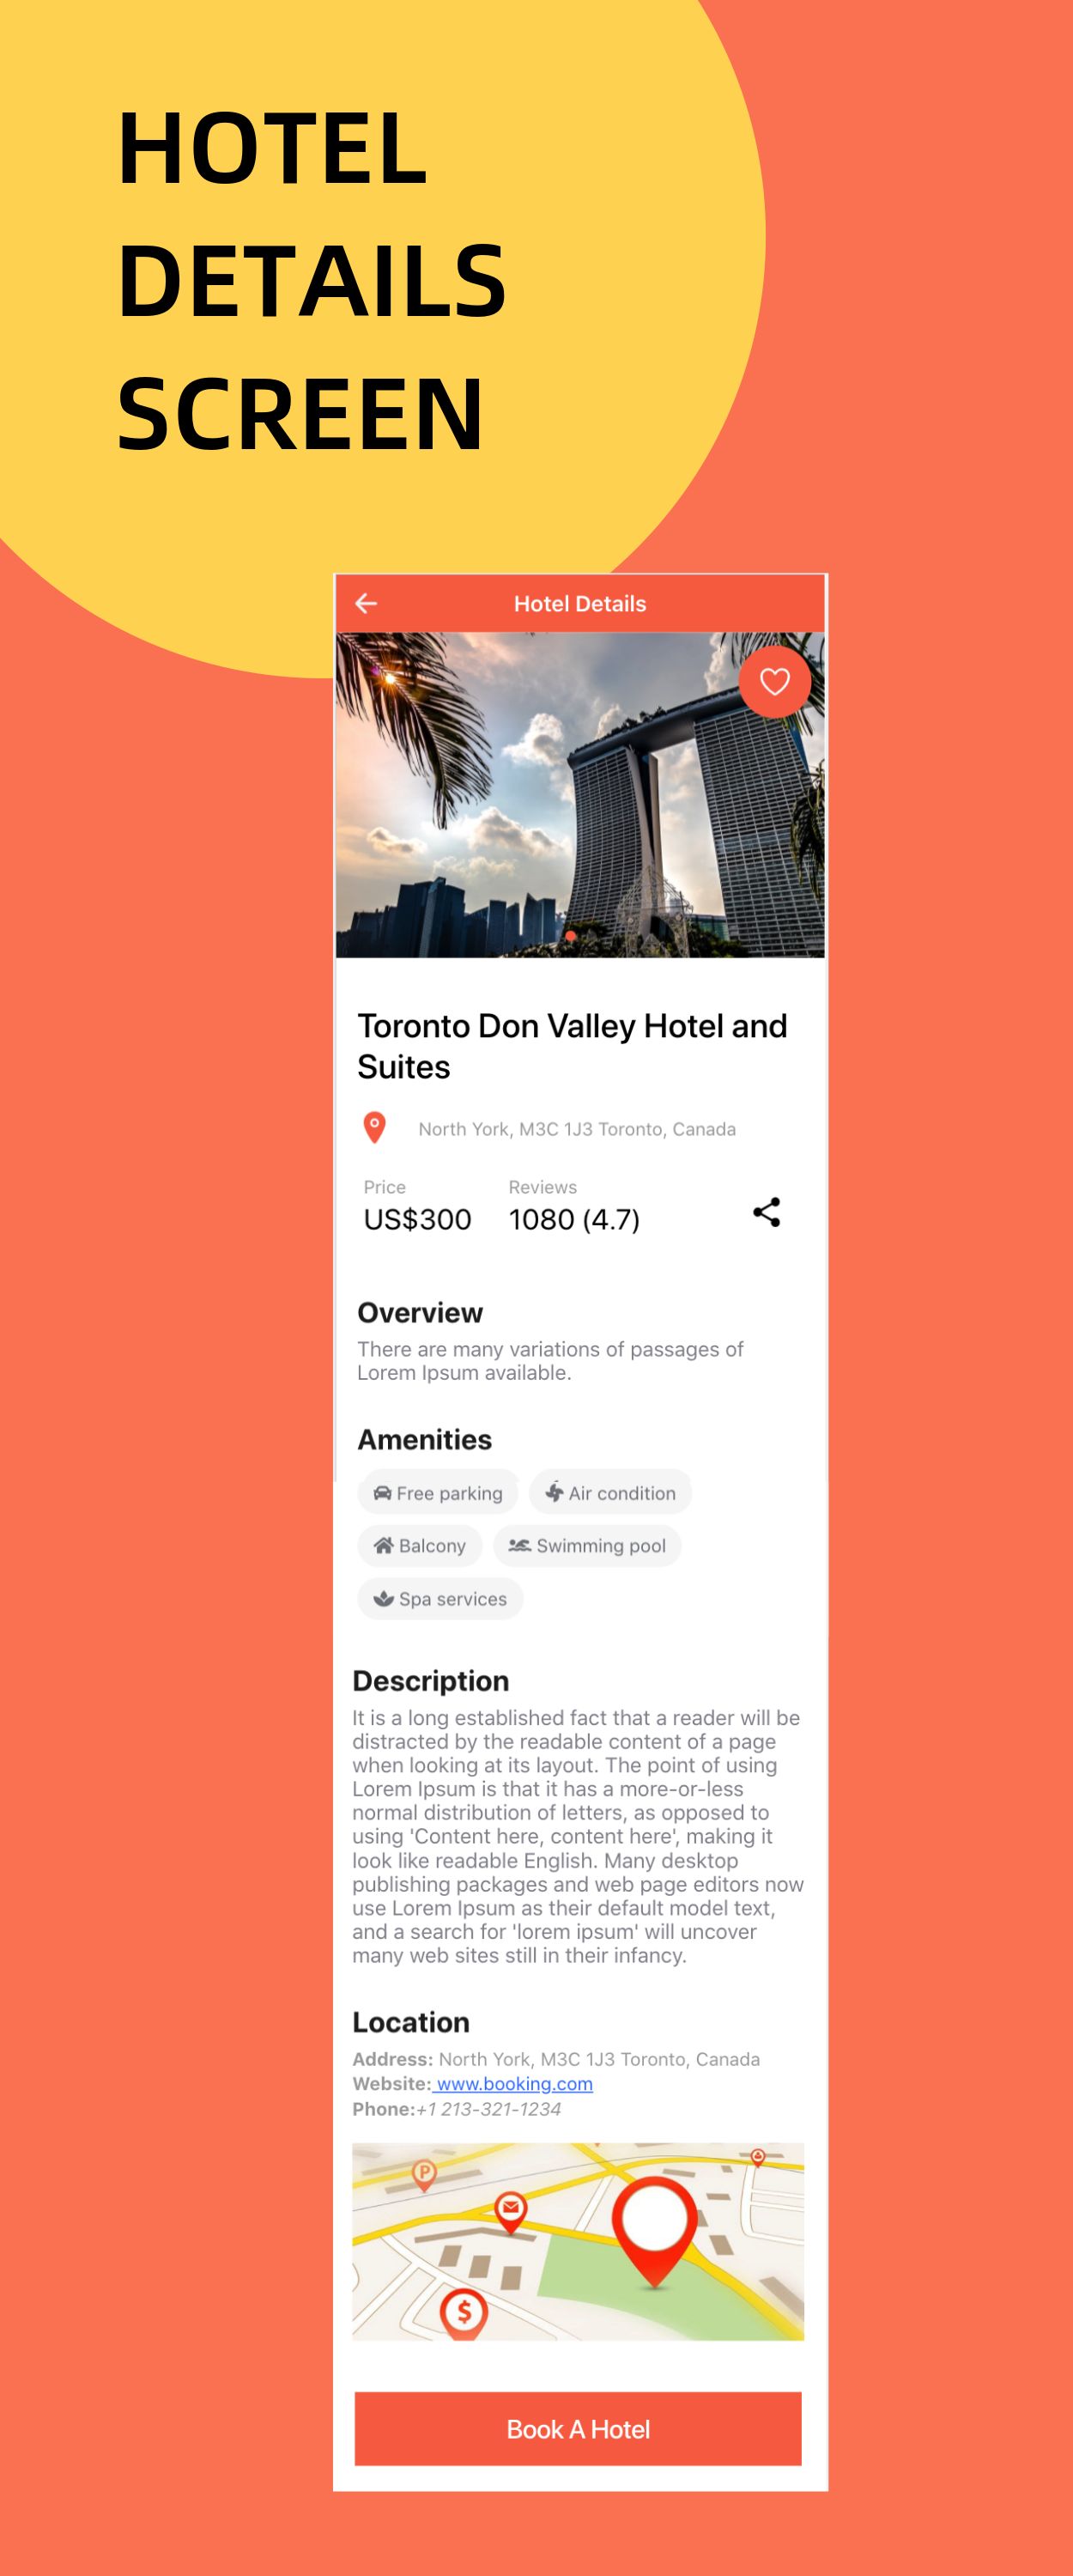 TravelEasy - A Travel Agency Theme UI App By Ionic 5 (Car, Hotel, Flight Booking) - 8